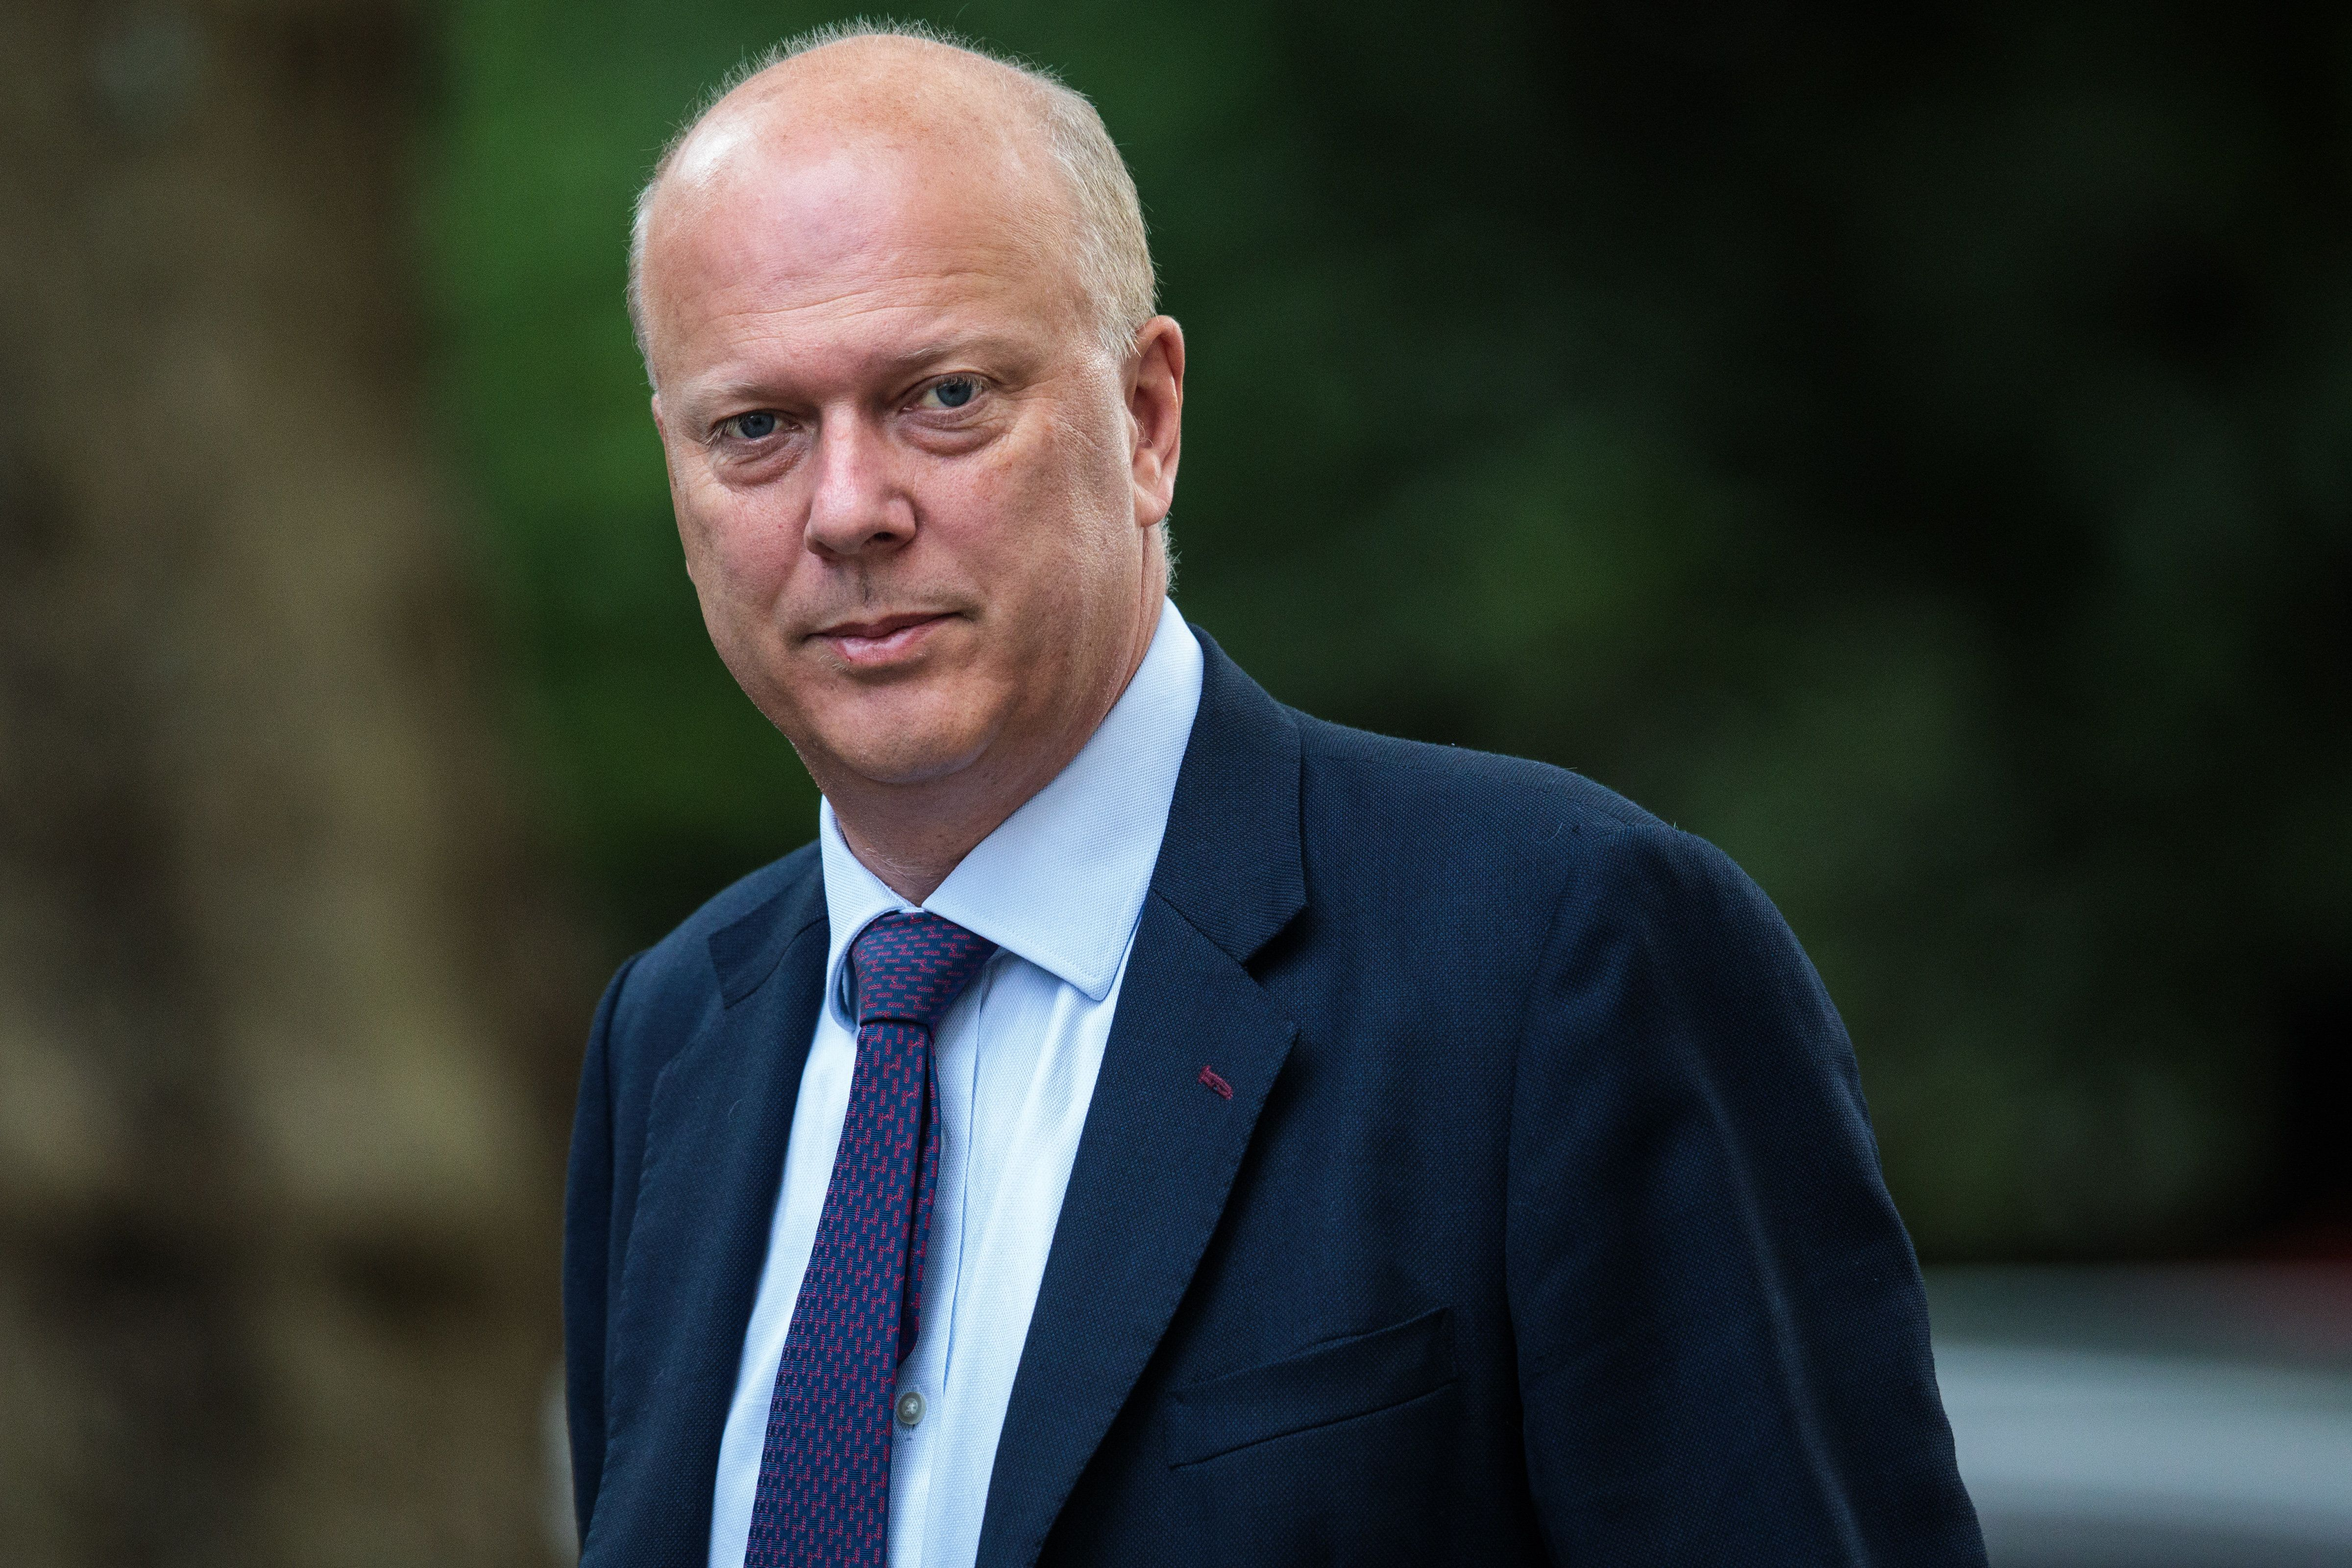 Chris Grayling 'Unfit' To Be Minister, Say Labour Frontbenchers In Letter To